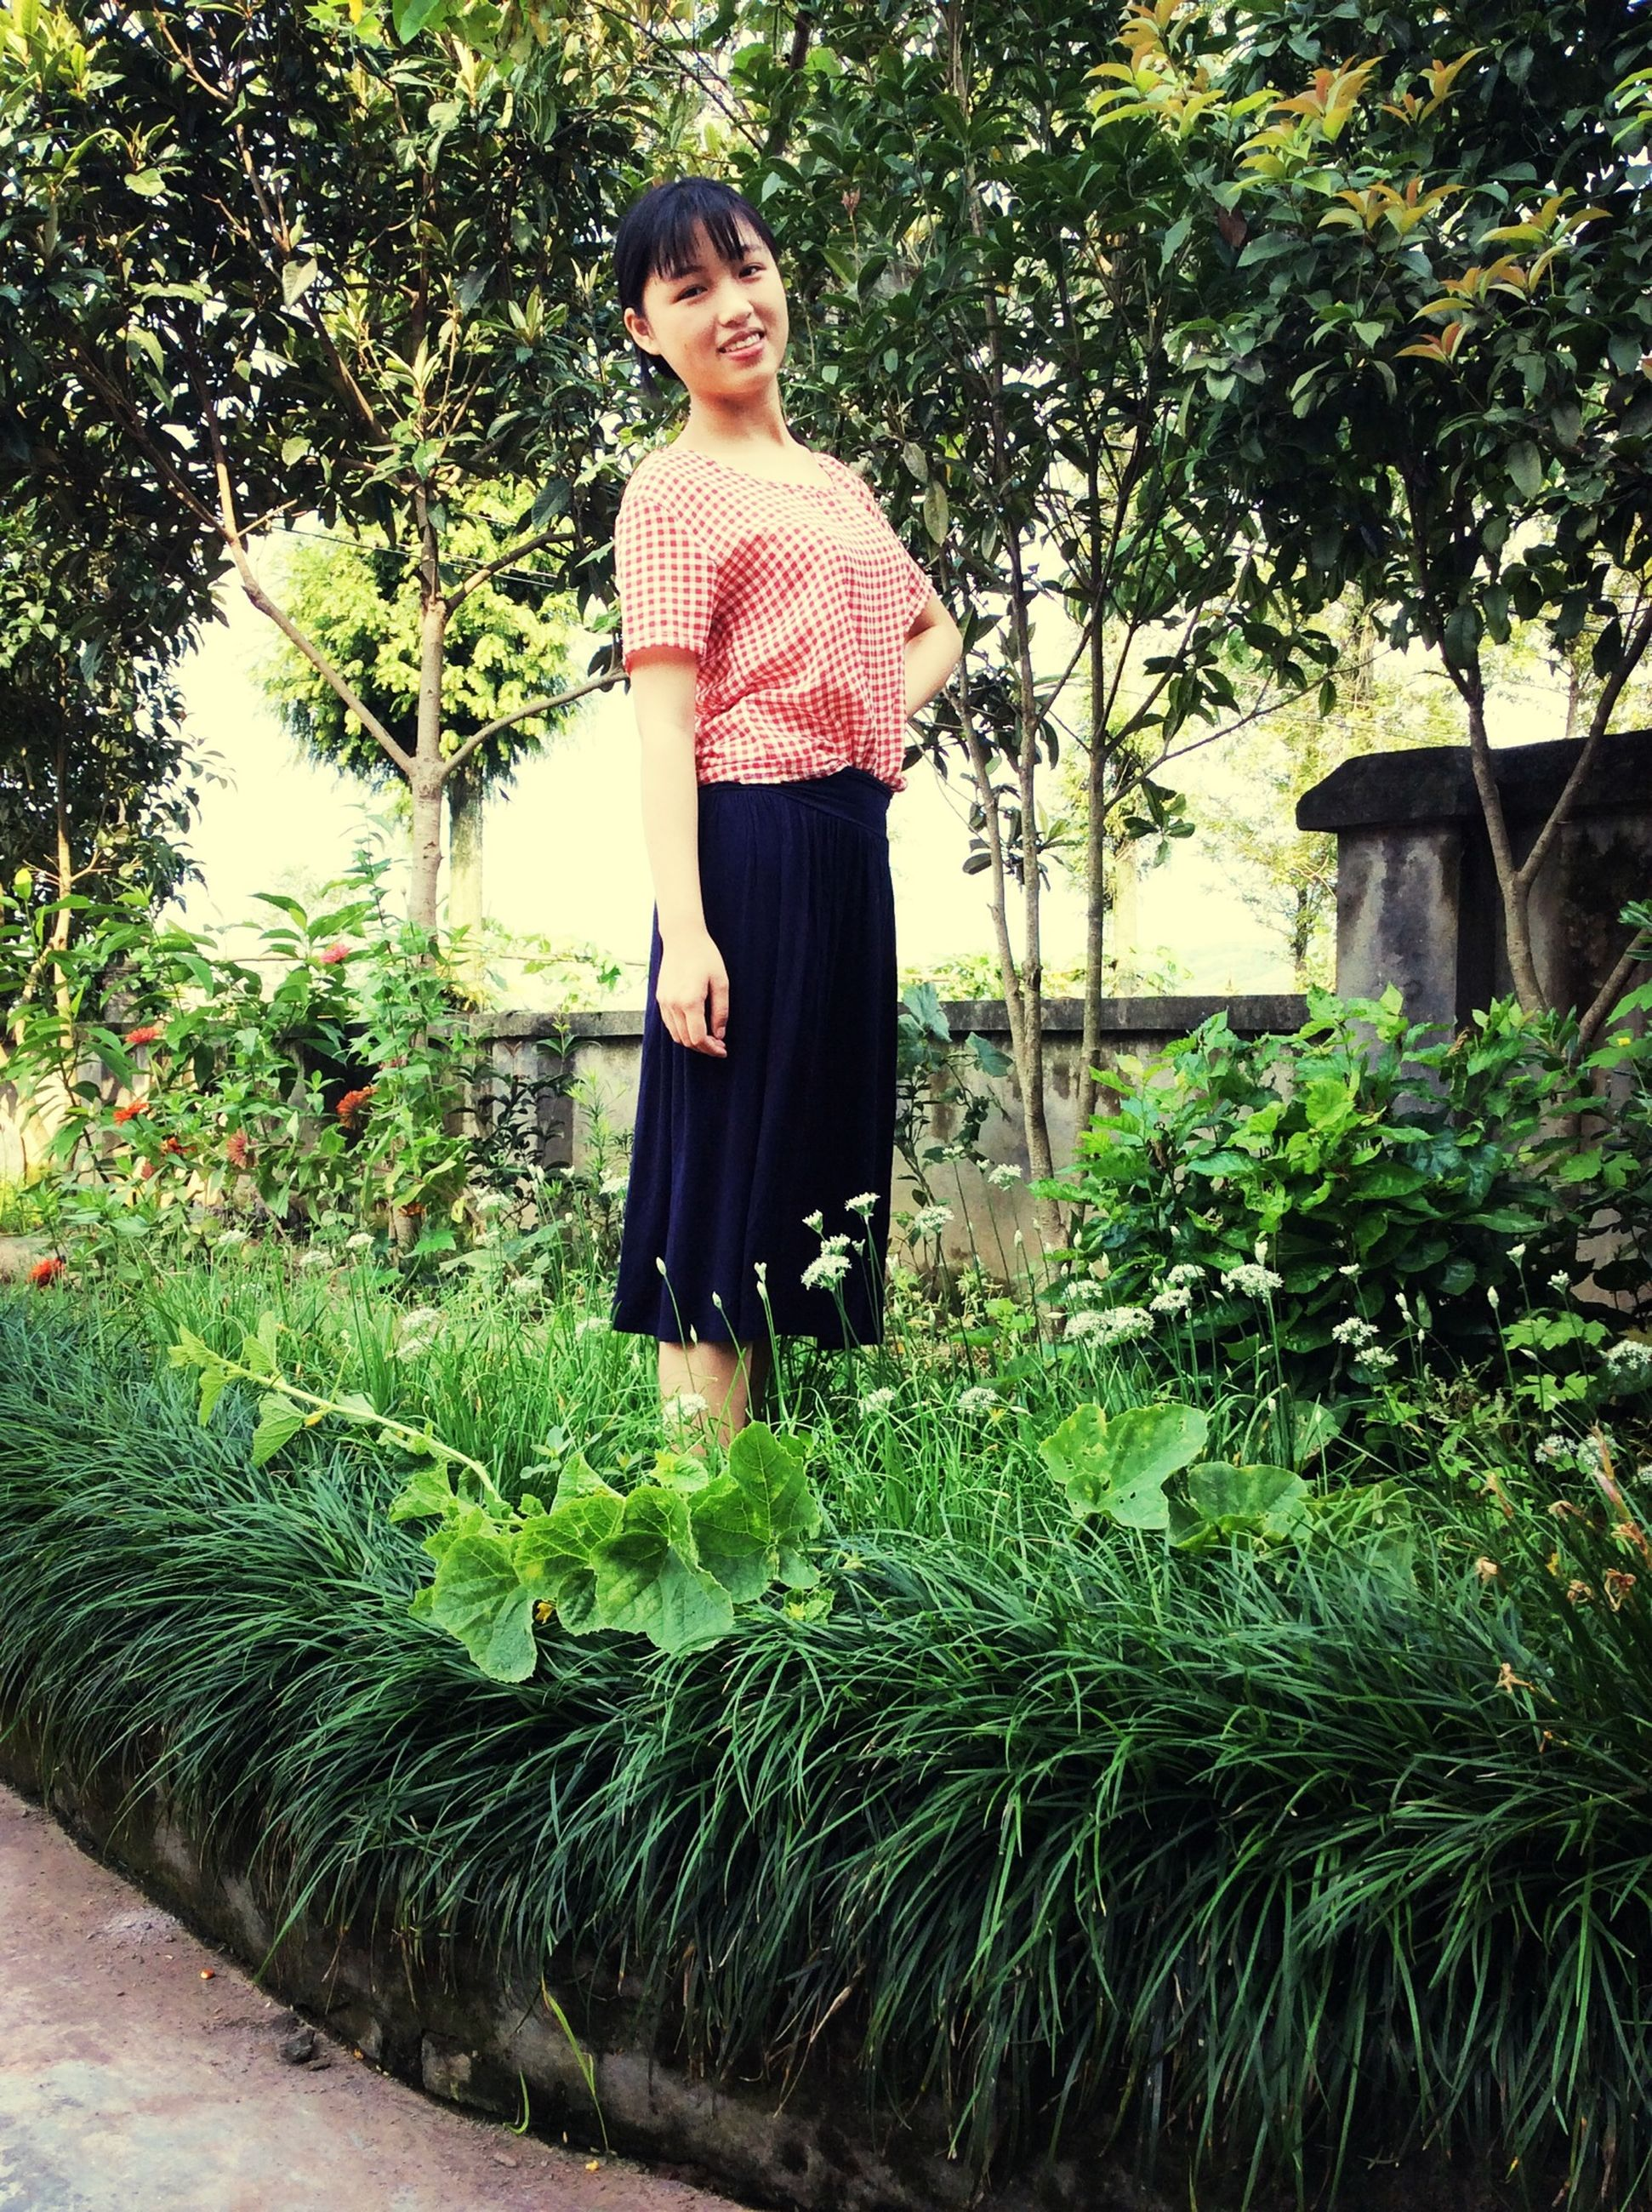 person, casual clothing, lifestyles, tree, young adult, full length, leisure activity, front view, standing, looking at camera, portrait, smiling, plant, young women, growth, three quarter length, happiness, green color